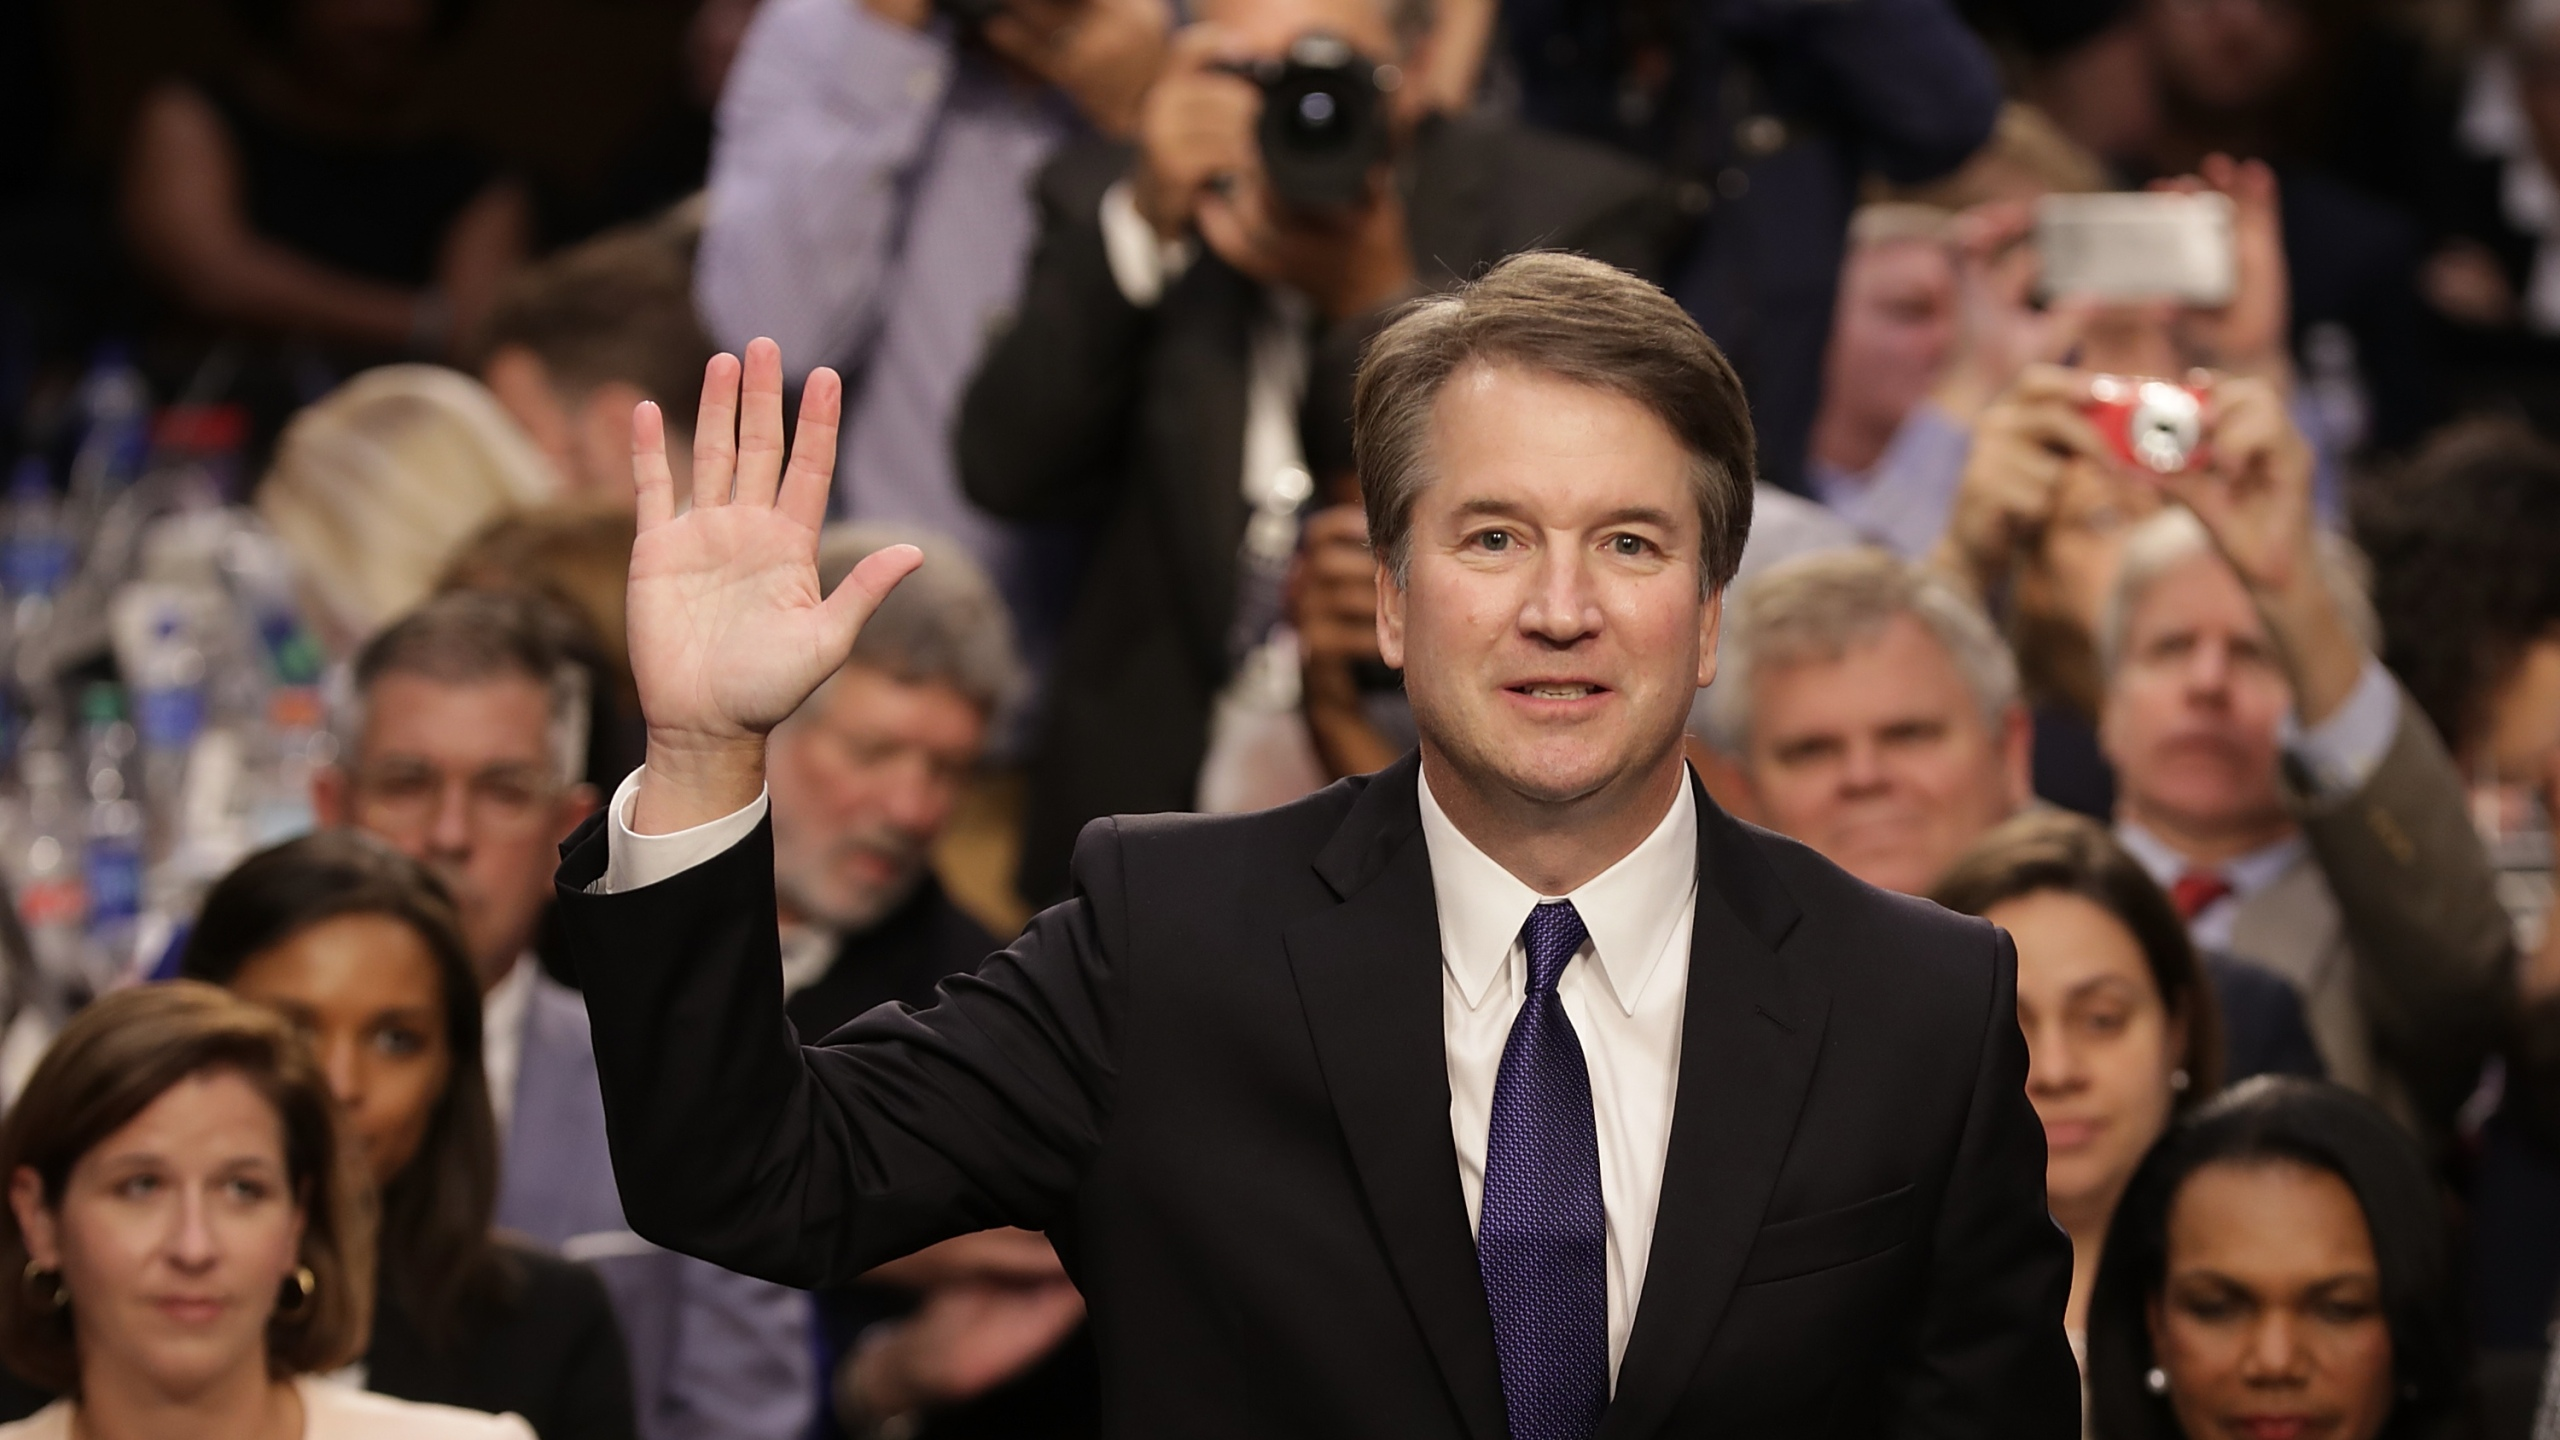 Supreme Court nominee Judge Brett Kavanaugh is sworn in before the Senate Judiciary Committee during his Supreme Court confirmation hearing in the Hart Senate Office Building on Capitol Hill on Sept. 4, 2018. (Credit: Chip Somodevilla/Getty Images)